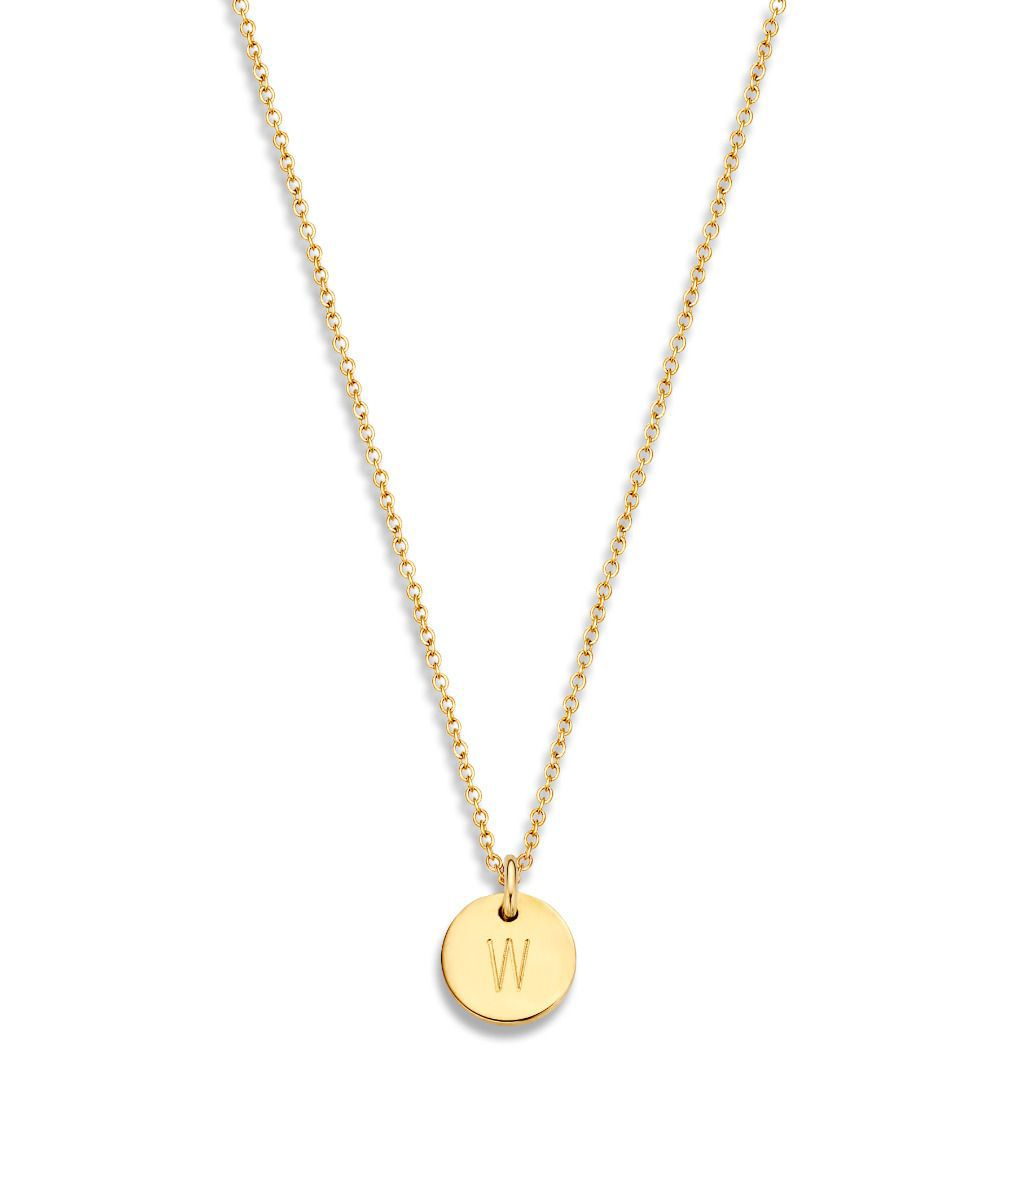 just franky ketting coin 1 coin